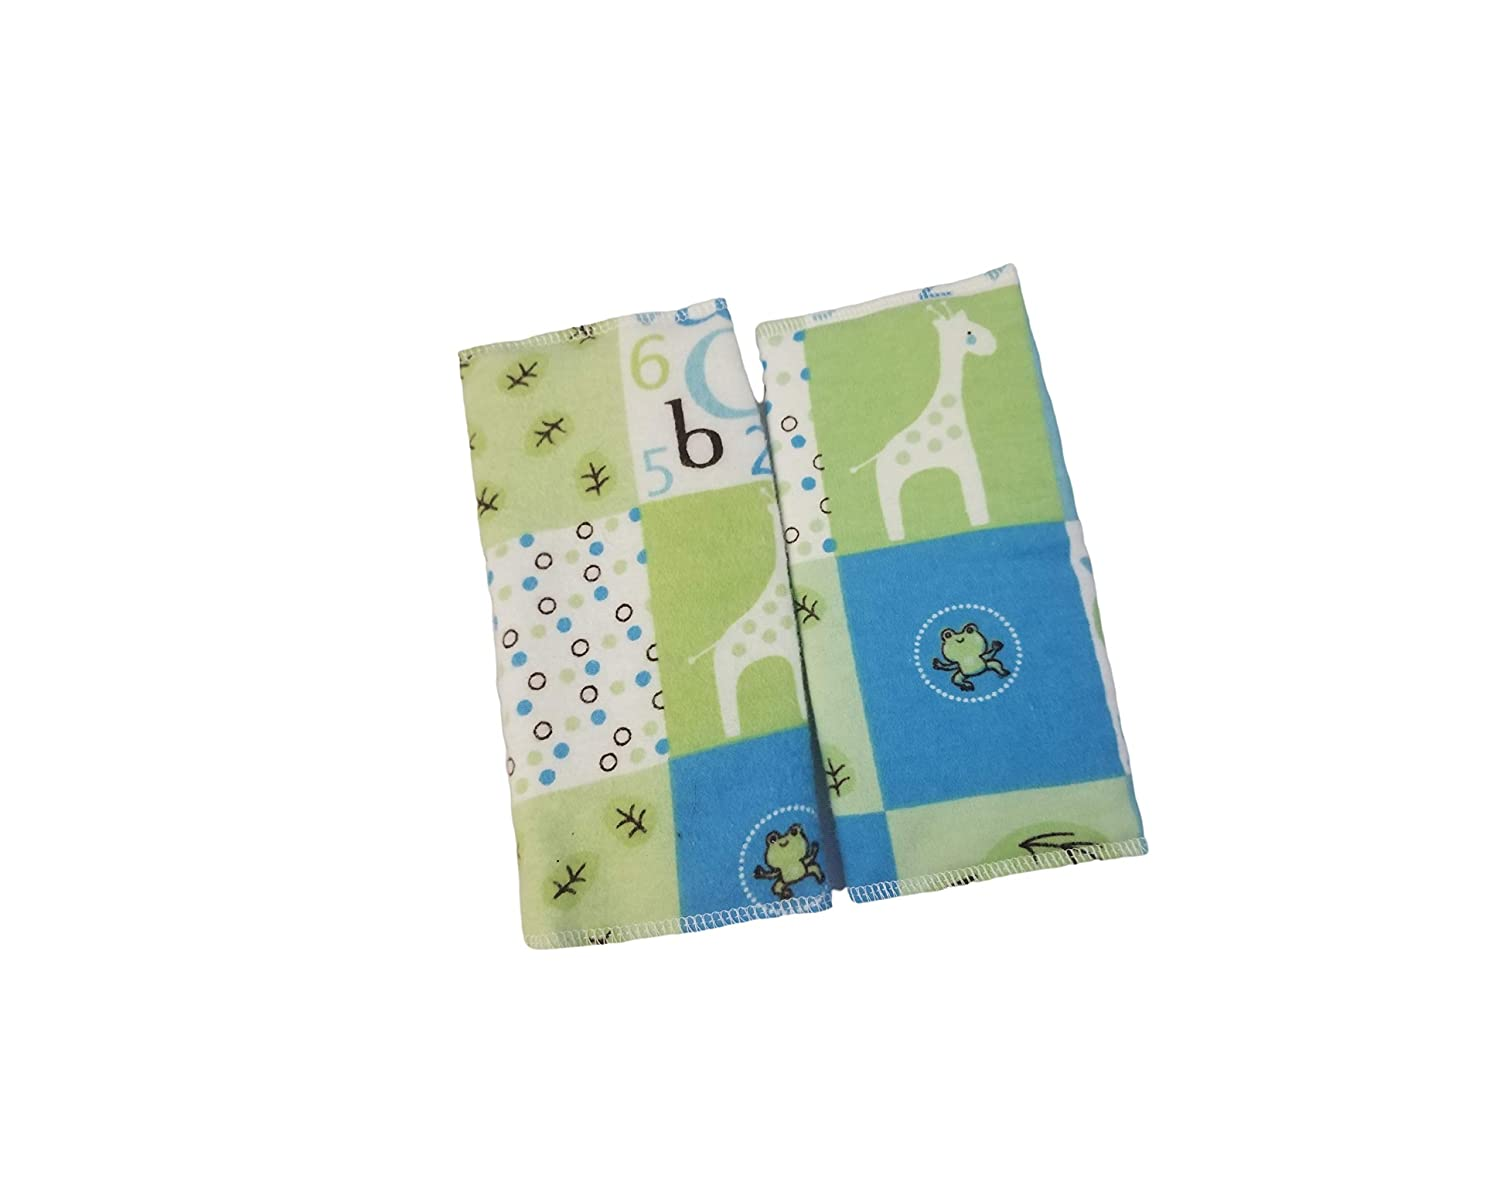 Blue and Yellow Giraffe Drool Suck Pads fits Carriers Such as tula,lilliebaby,Ergo